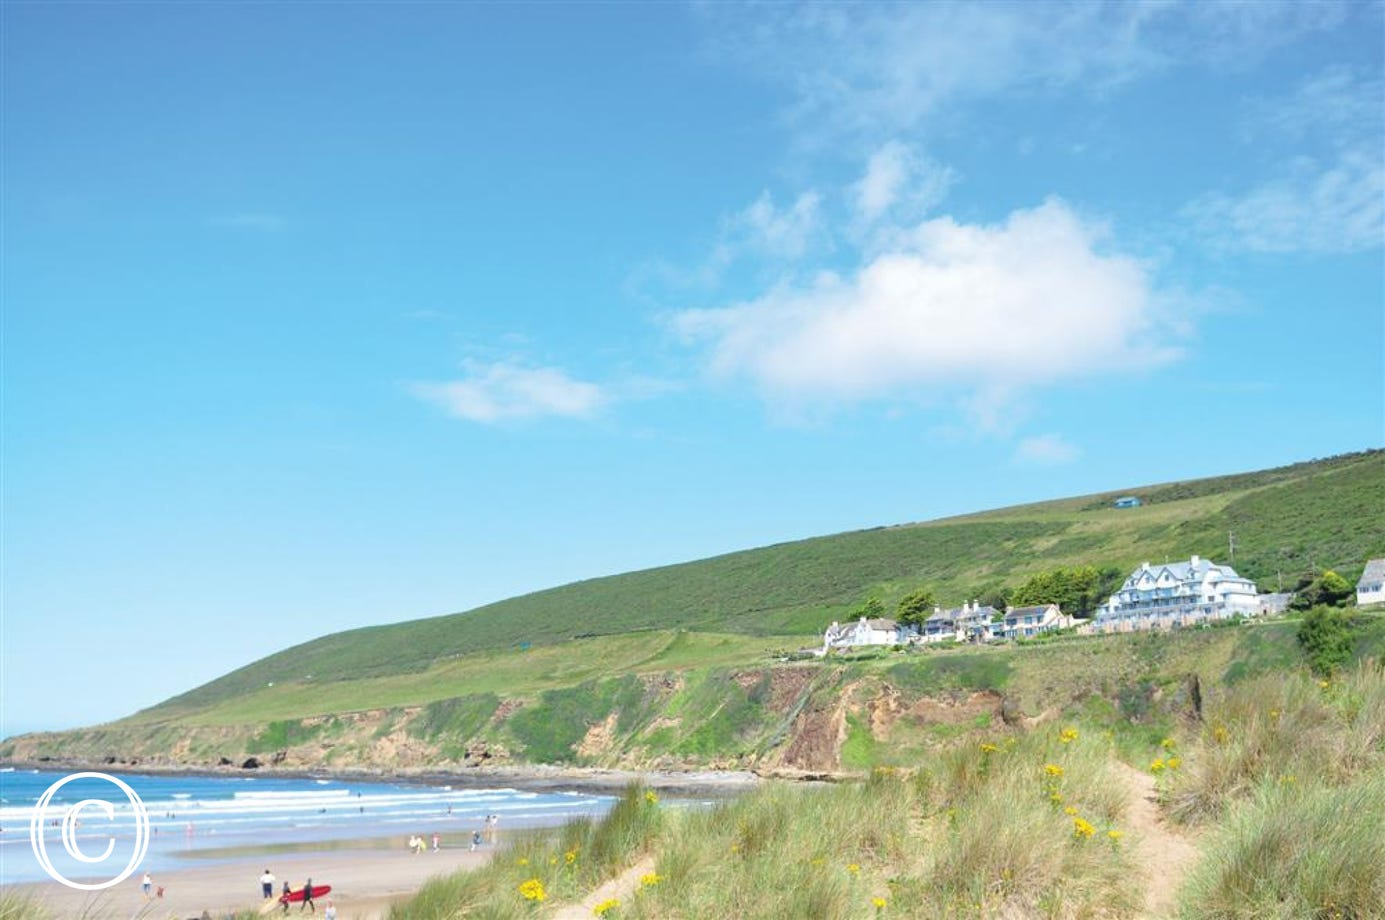 A view of The Tides from Saunton beach